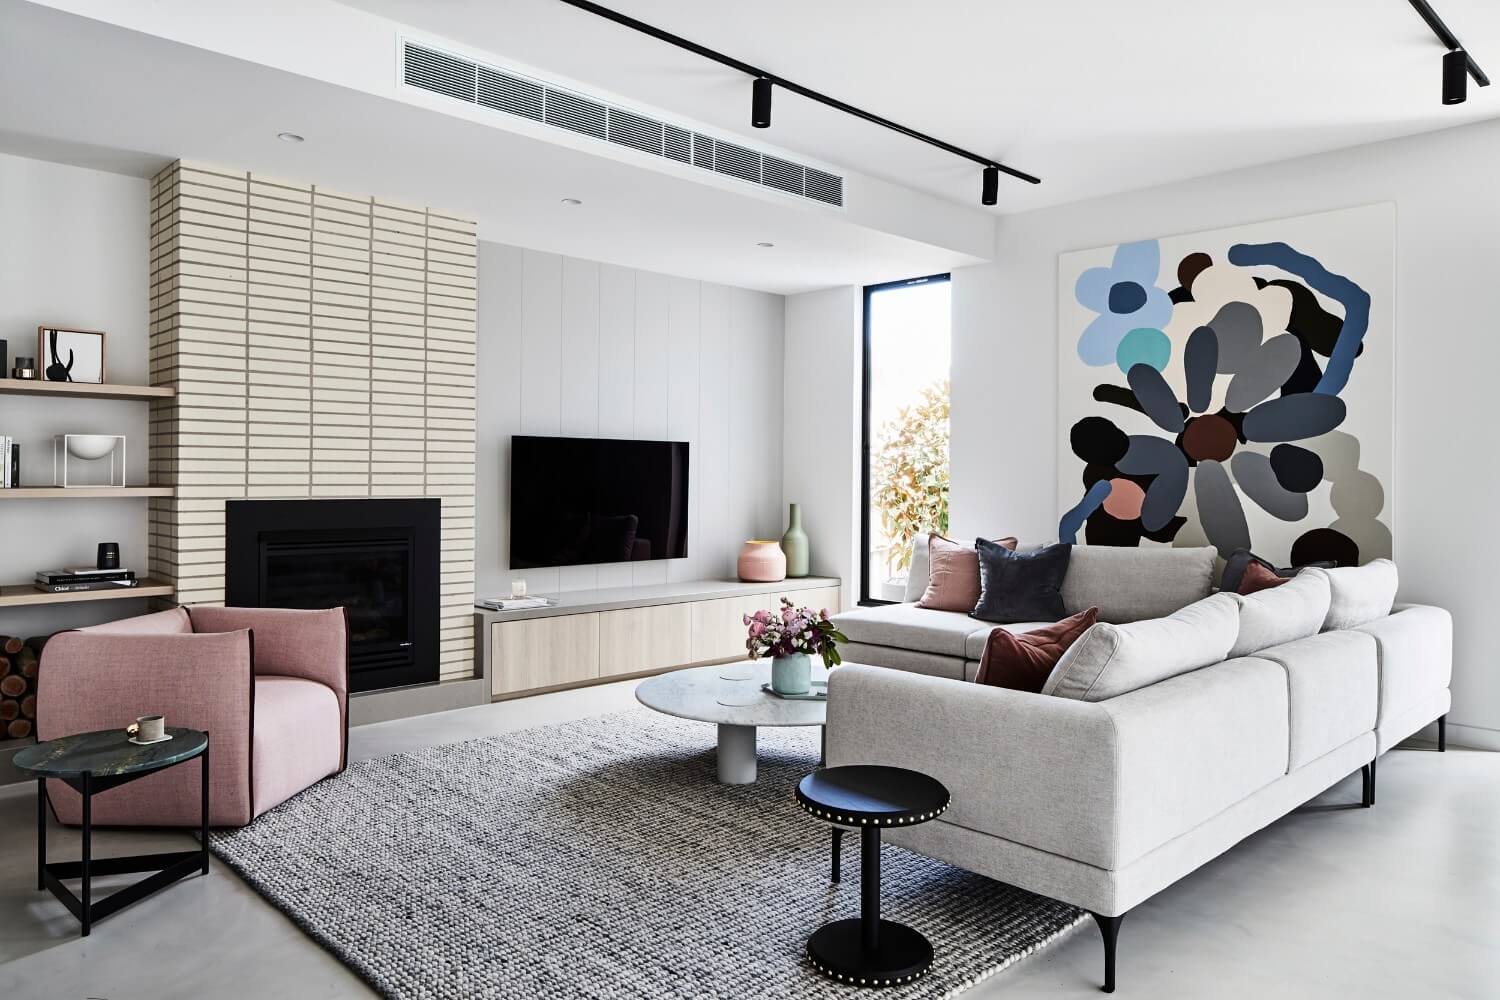 Living Room Style Ideas: Different Styles and Tips on How to Incorporate Them in Your Home